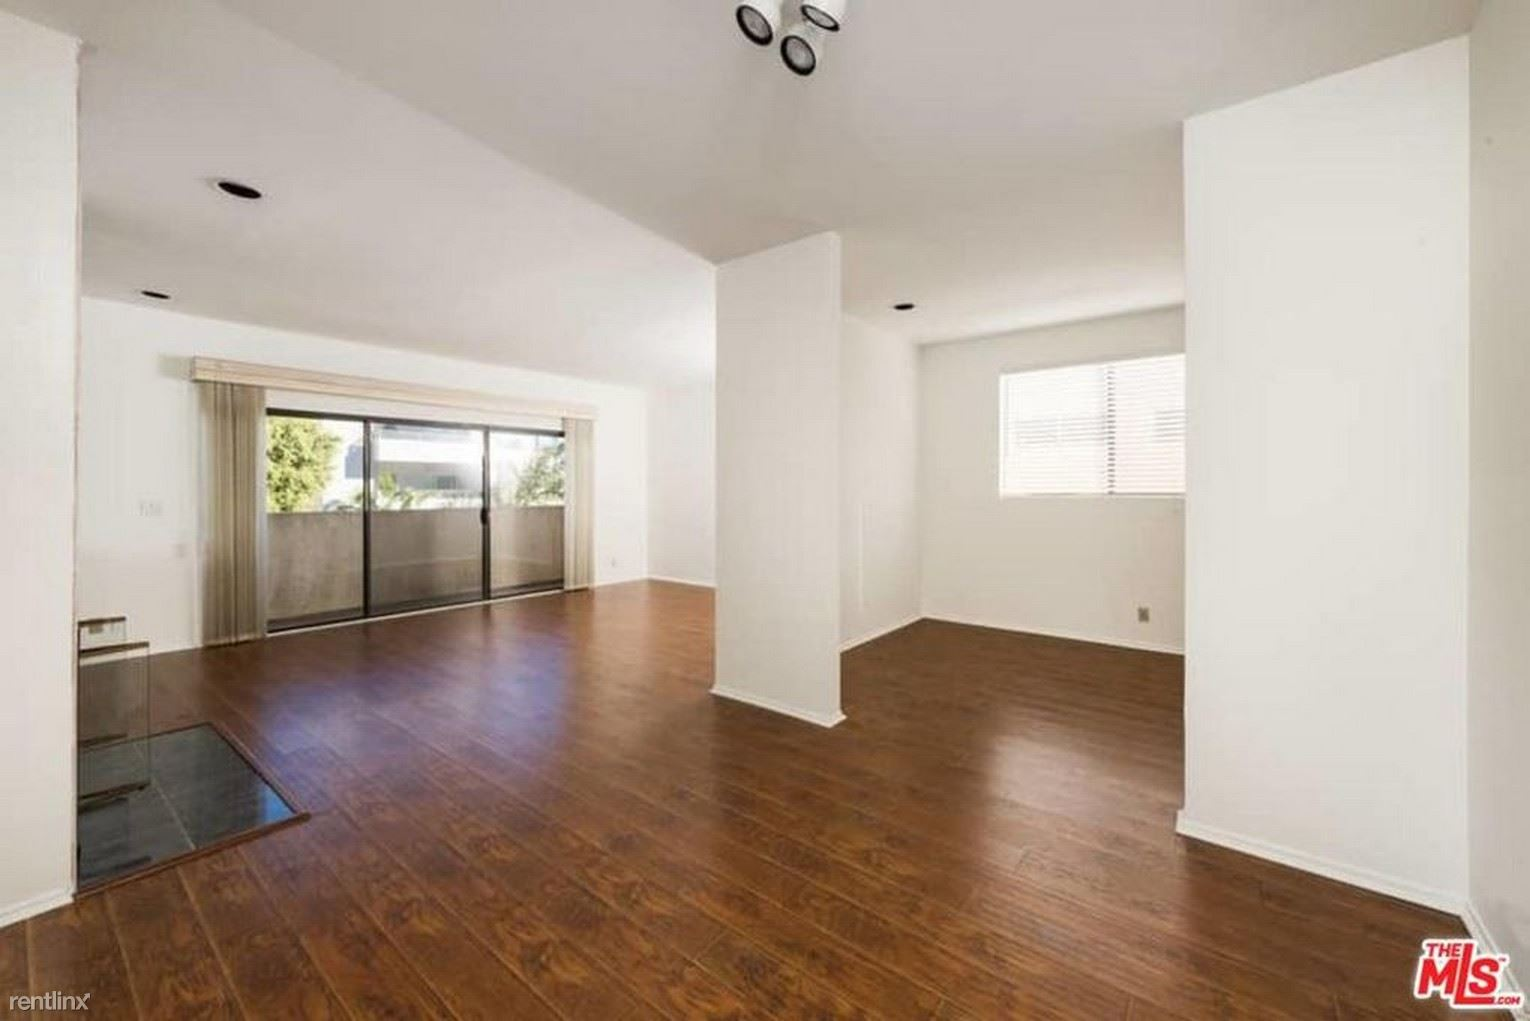 1741 Colby Ave, Los Angeles, CA - $800 USD/ month